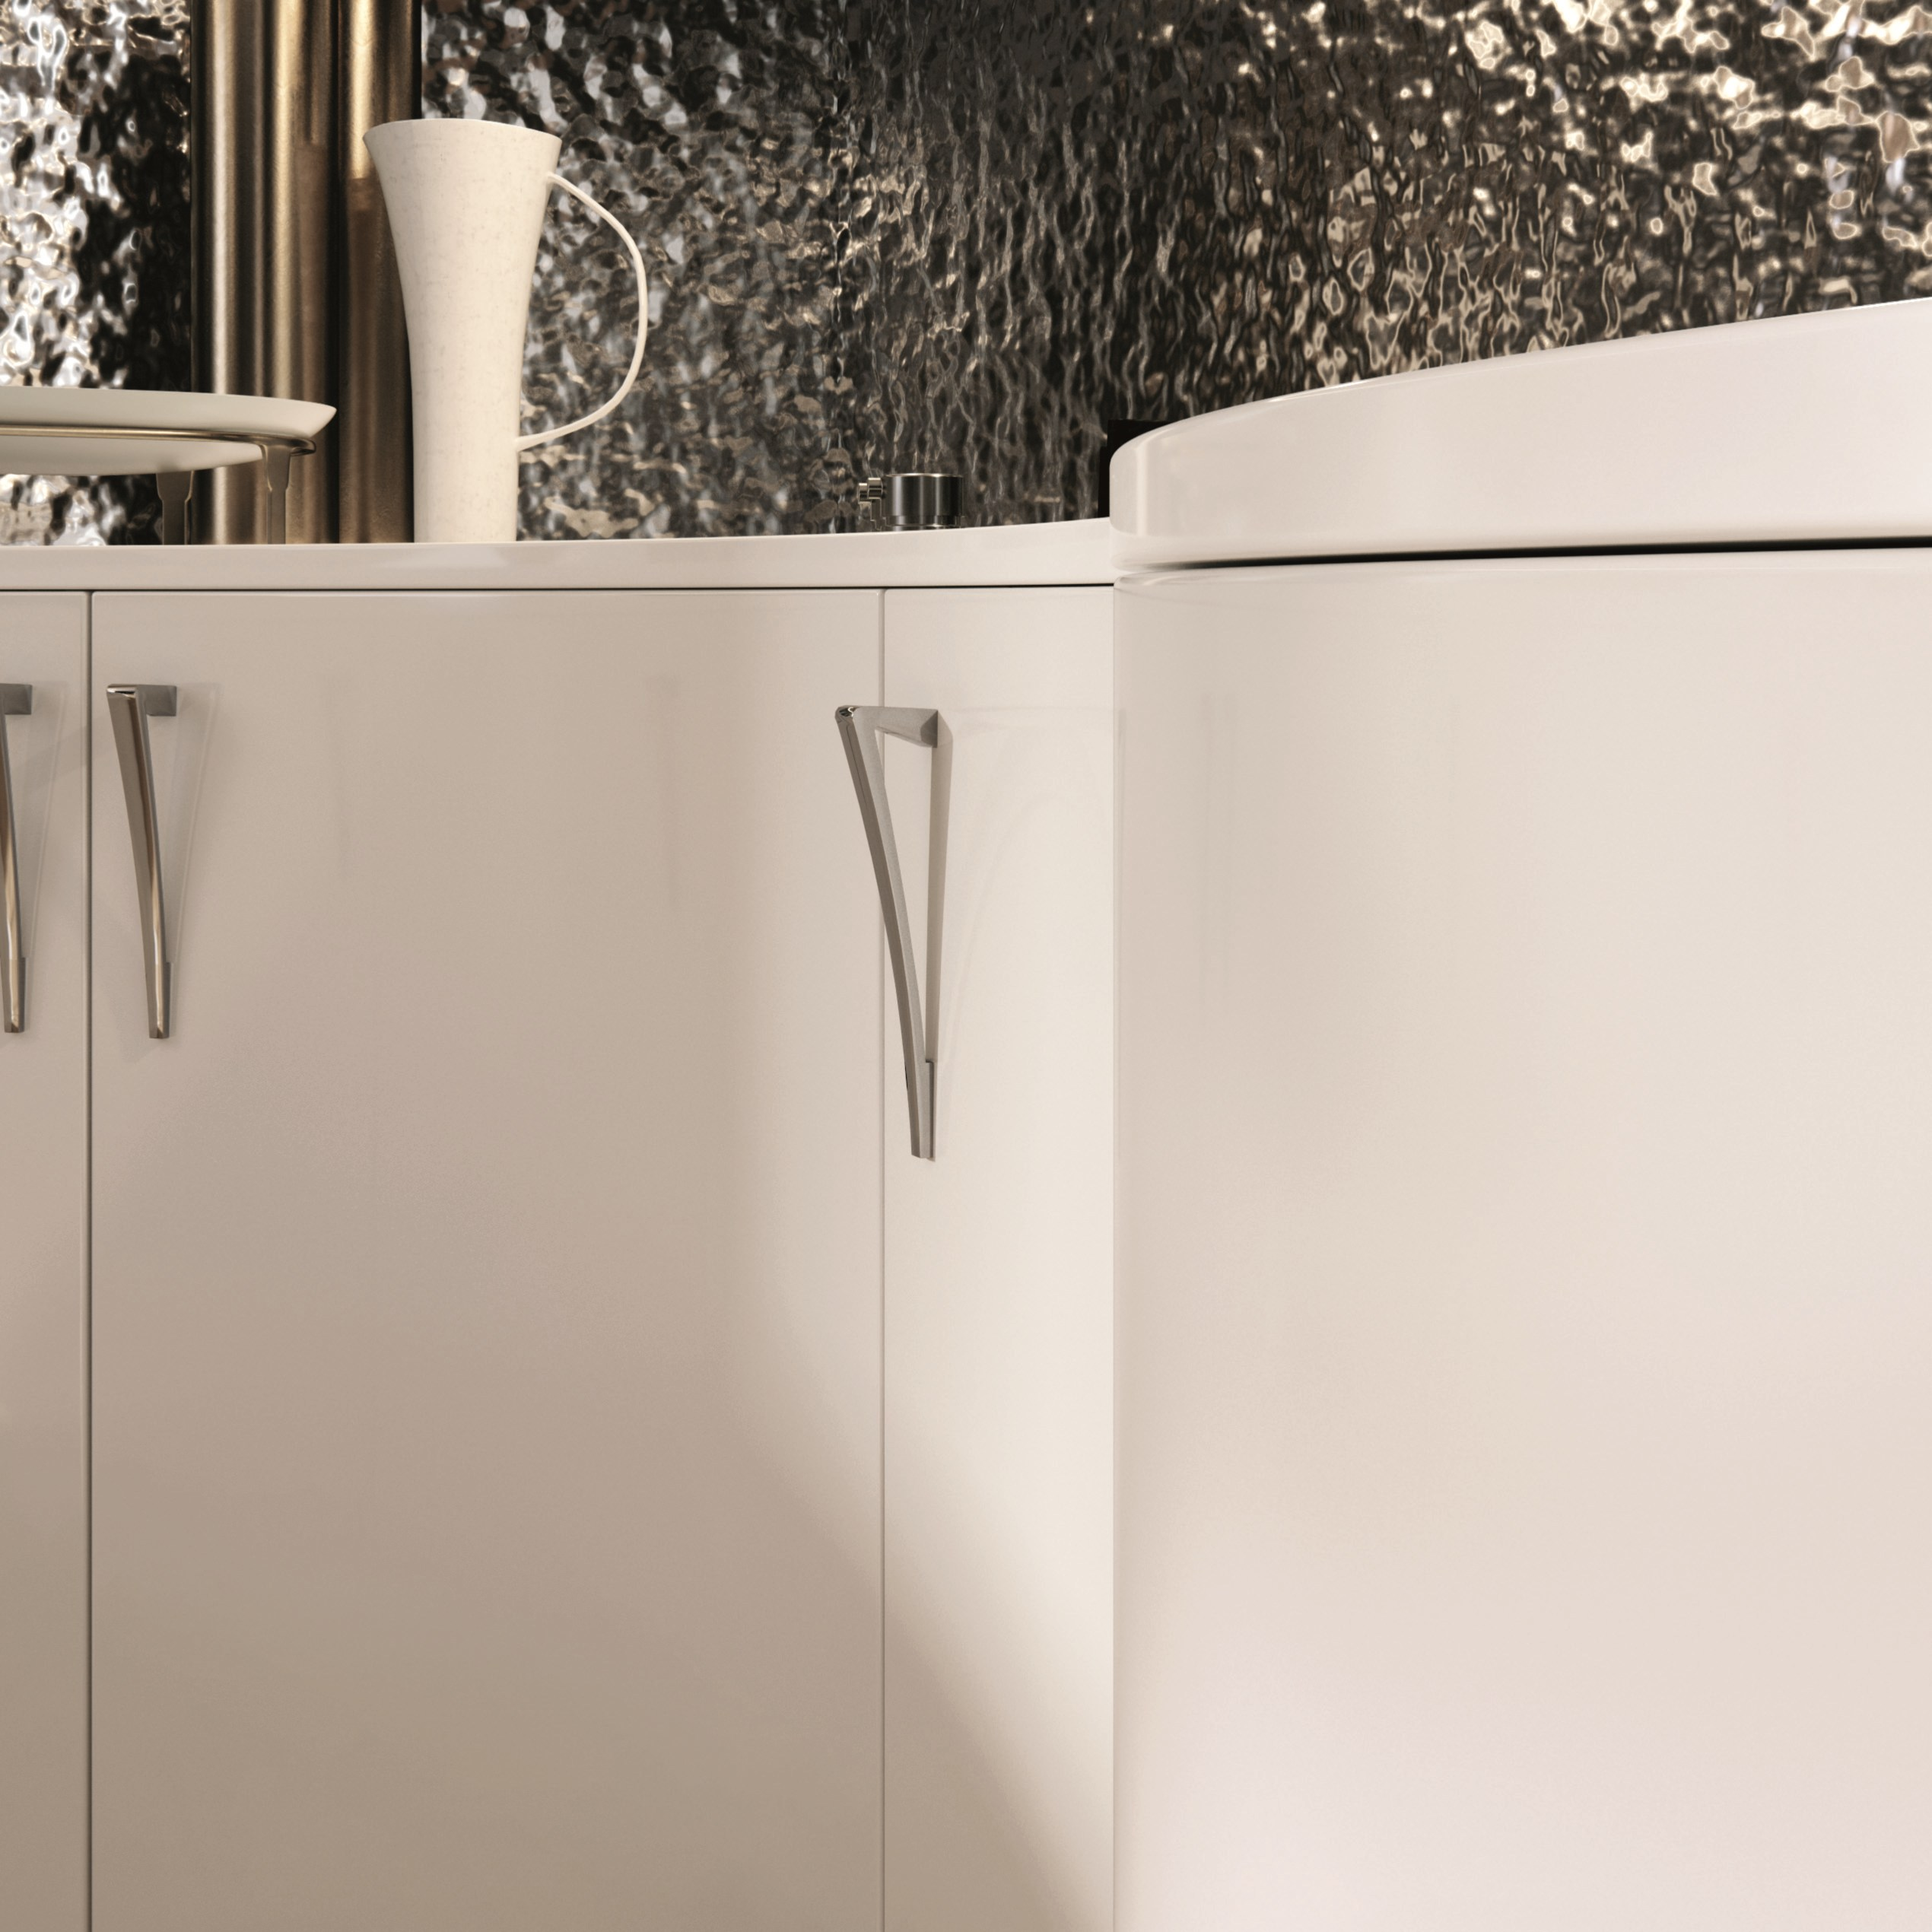 Aster Cucine Outlet. Classic Cuisine Imperial Opera By Aster ...